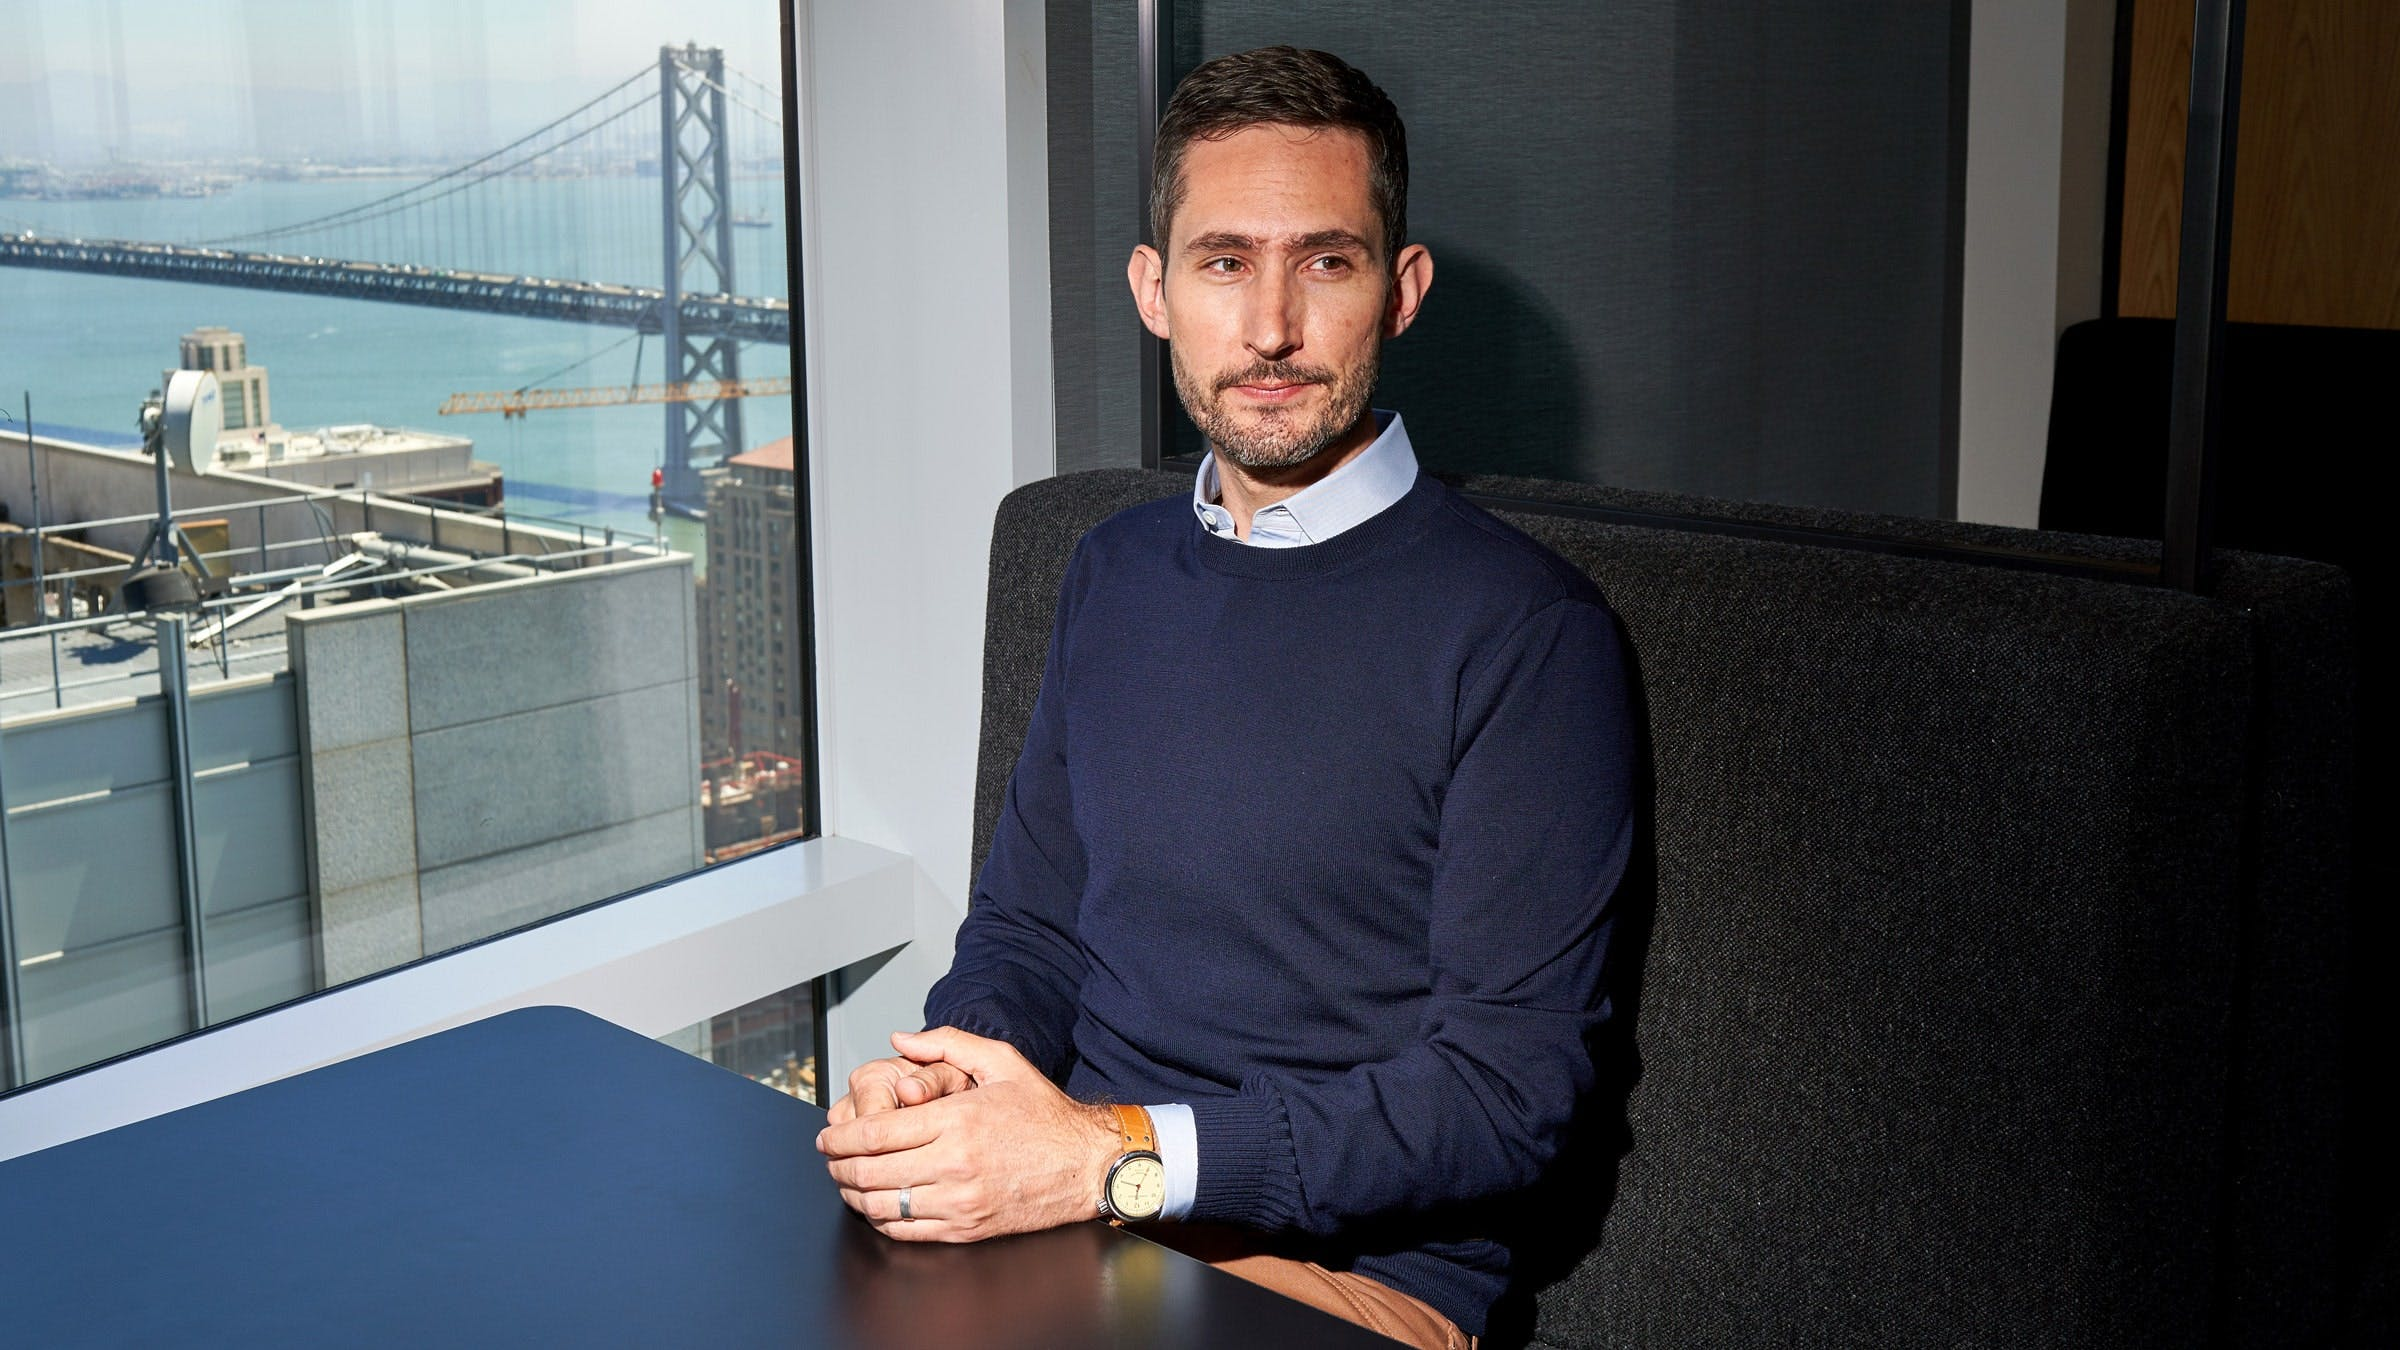 ENTREPRENEURIAL LESSONS FROM INSTAGRAM CO-FOUNDER KEVIN SYSTROM